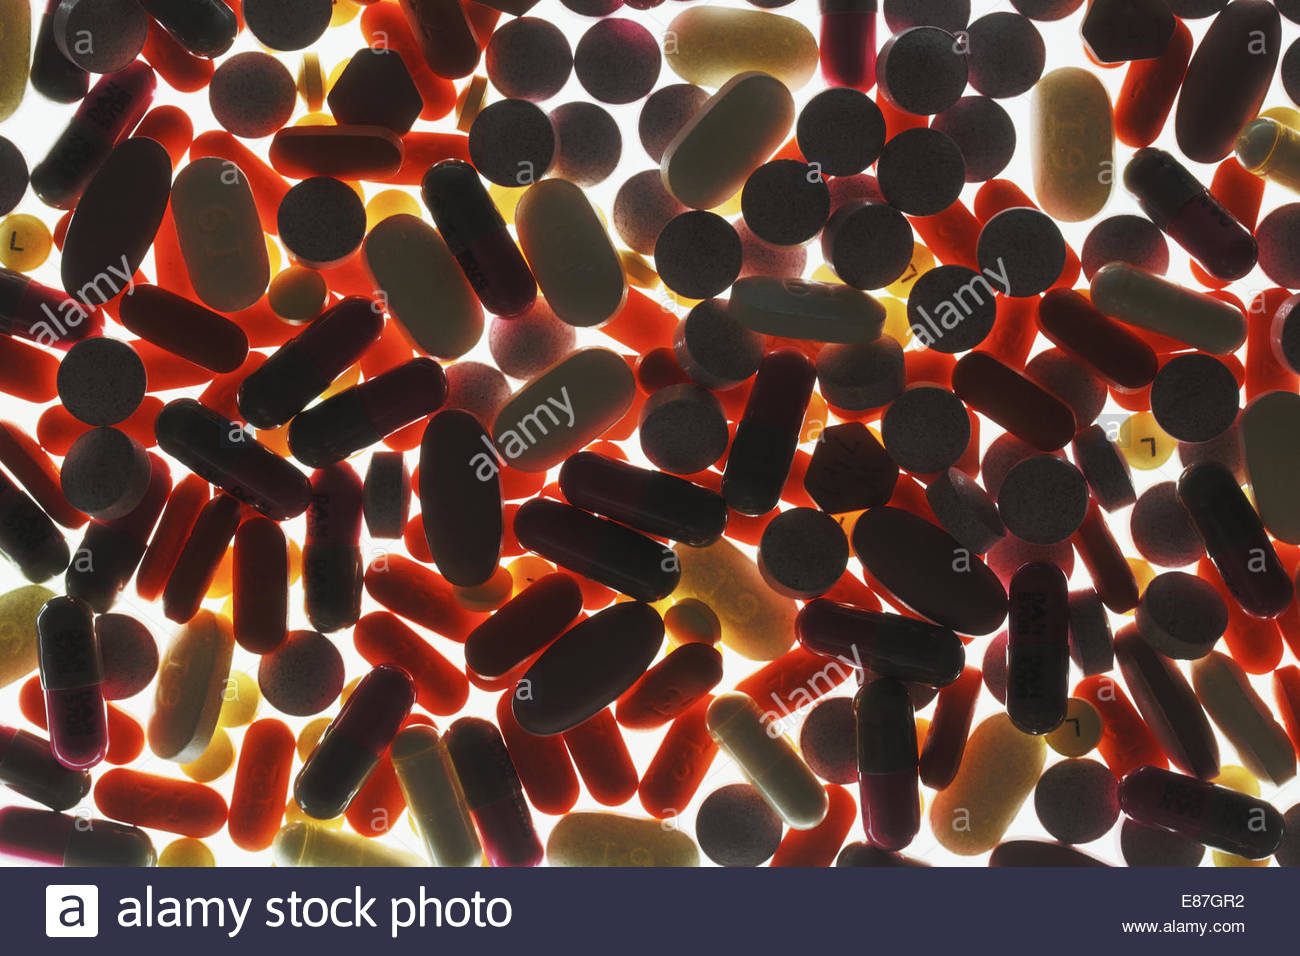 Medical pills of every size and color - Stock Image